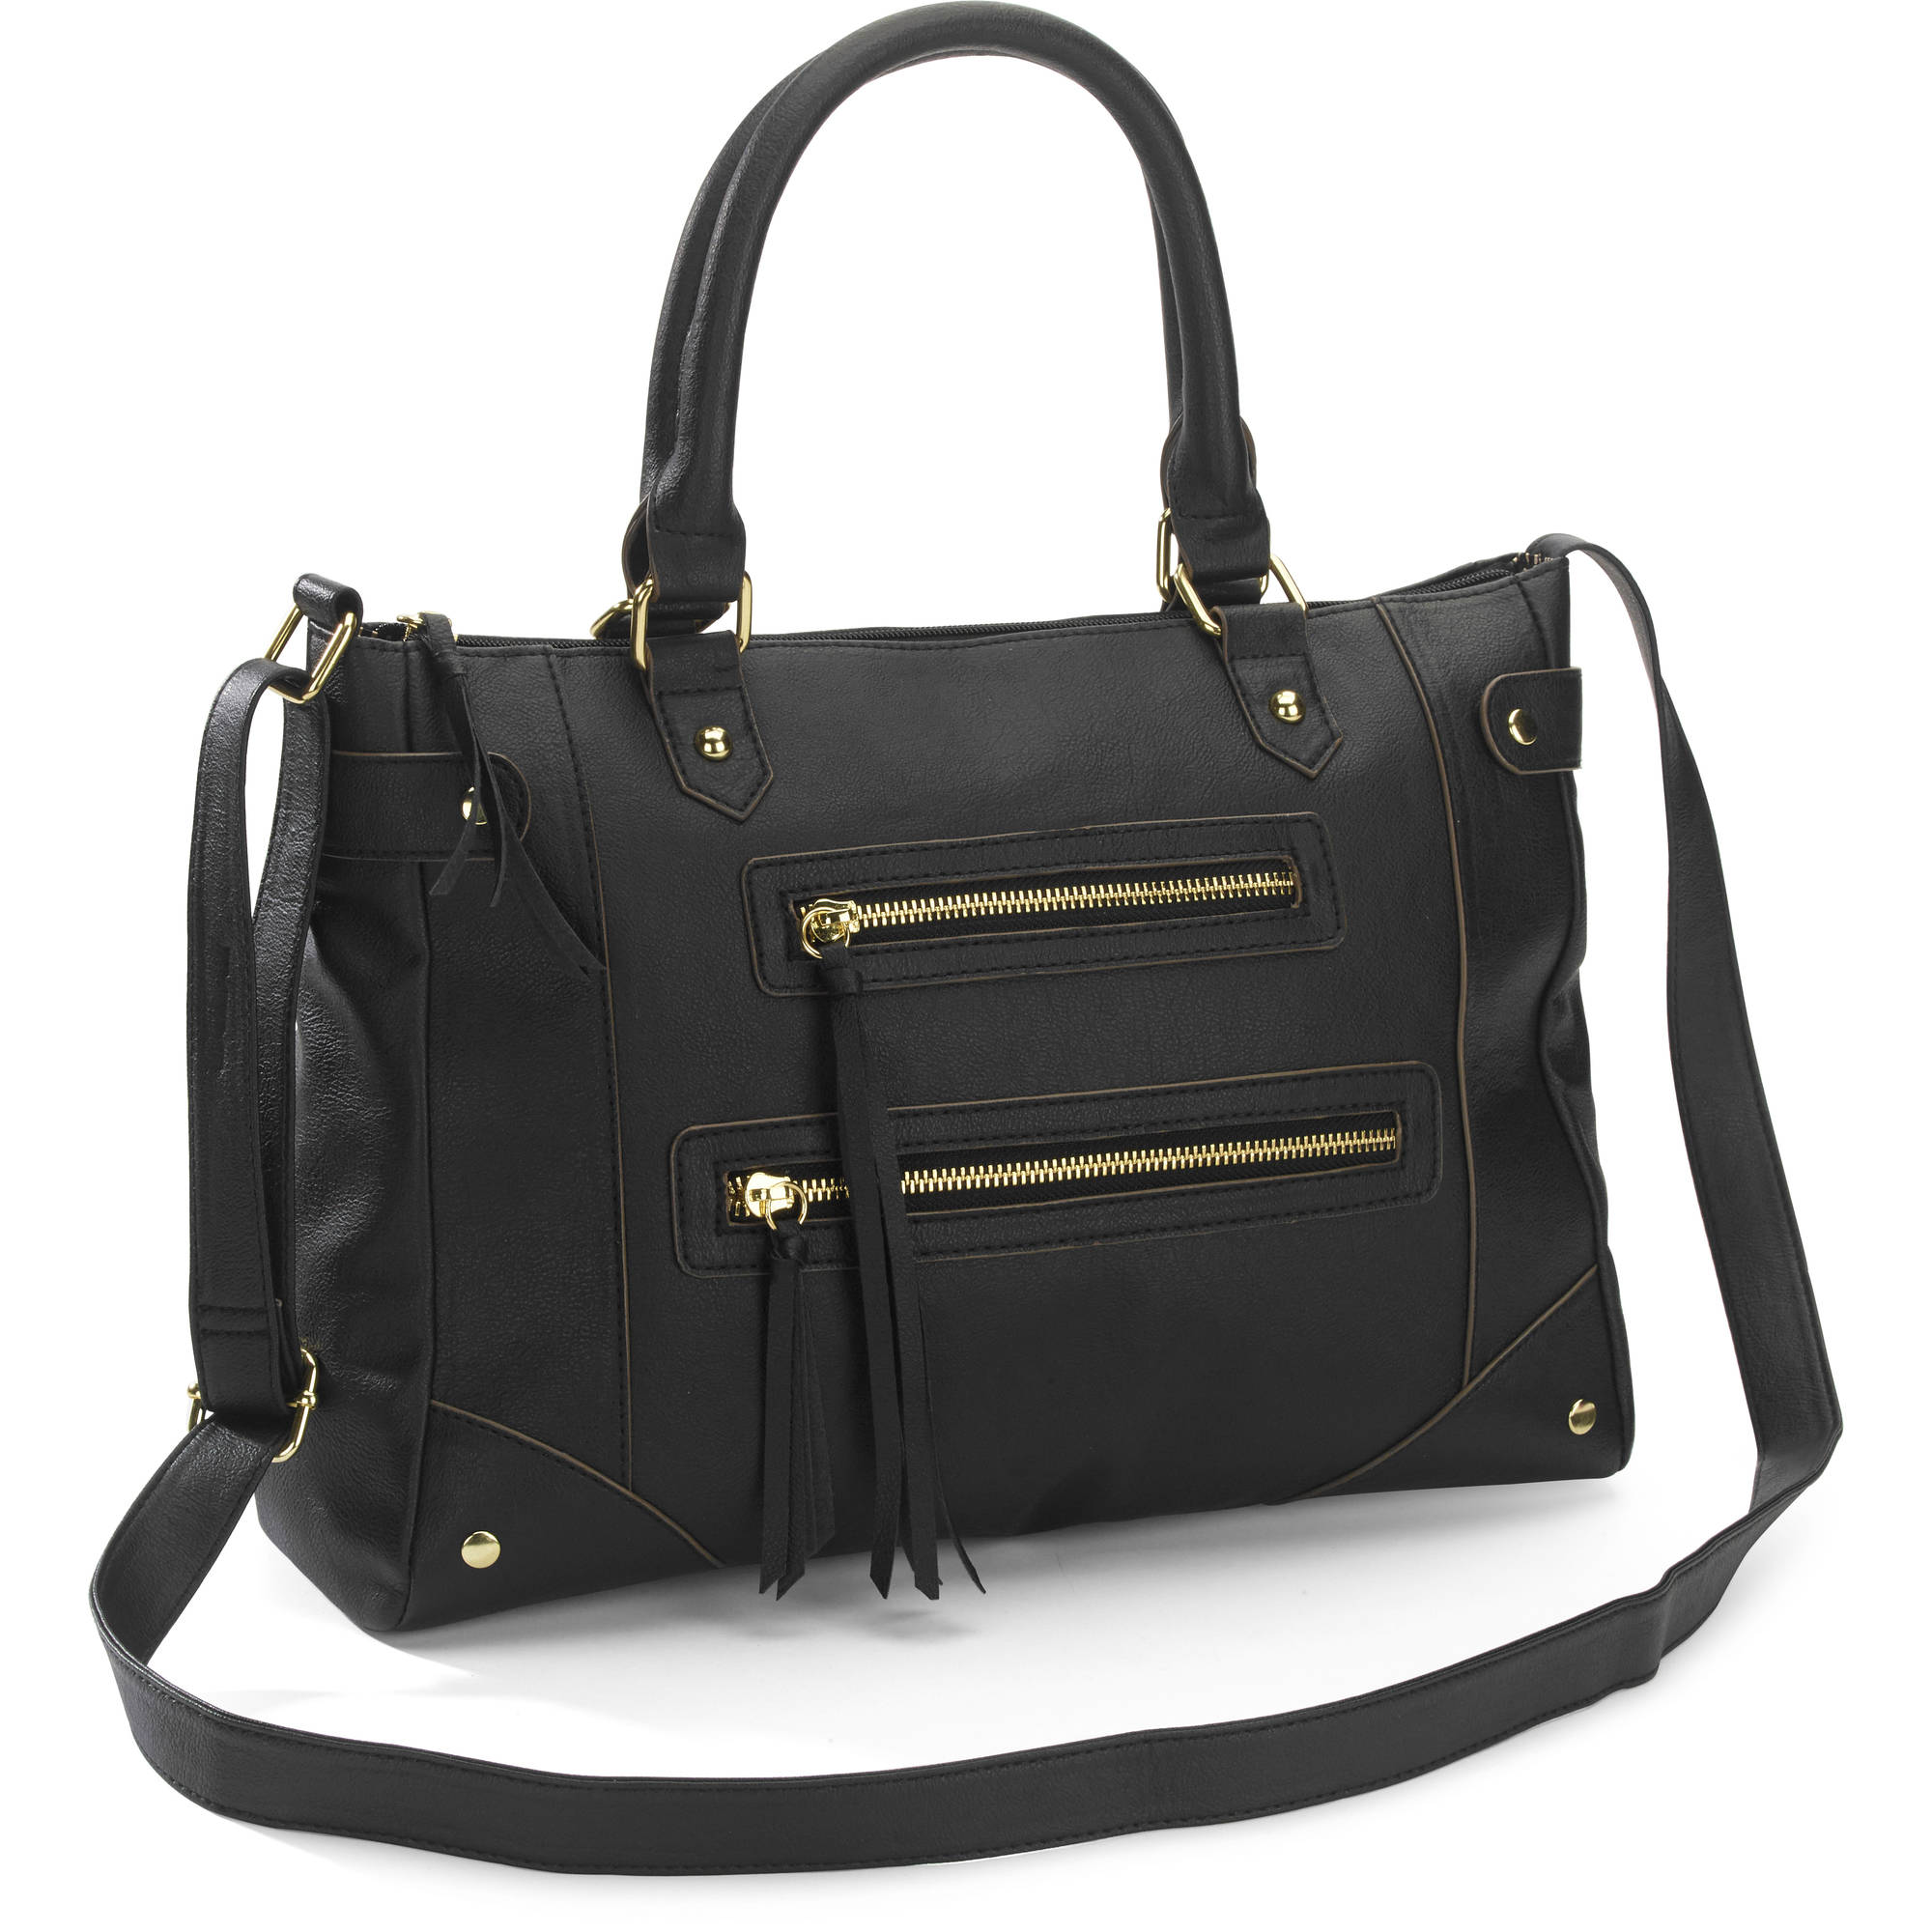 George Women's Contemporary Zipper Satchel Handbag